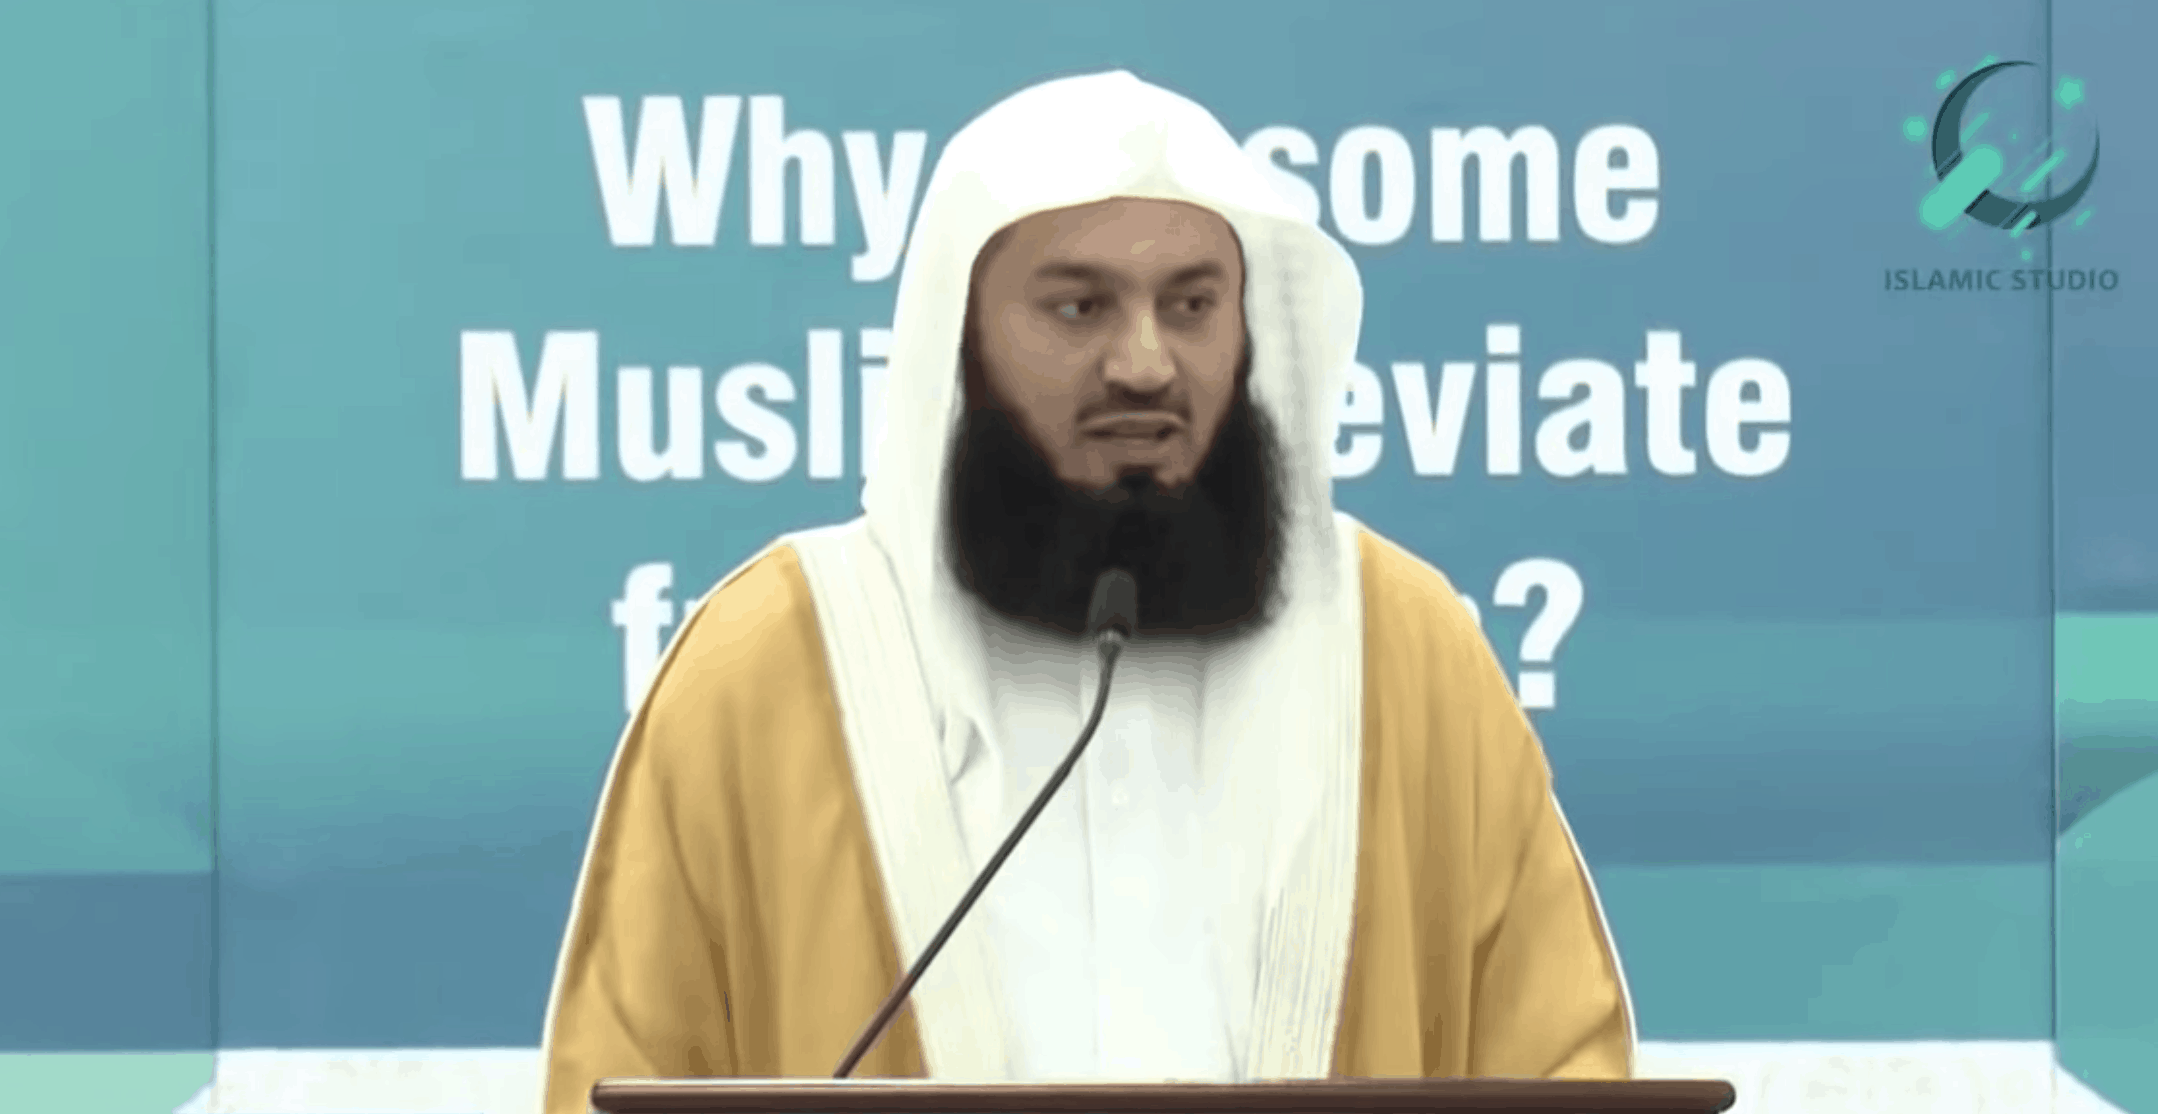 Ismail ibn Musa Menk – Why some Muslims deviate?